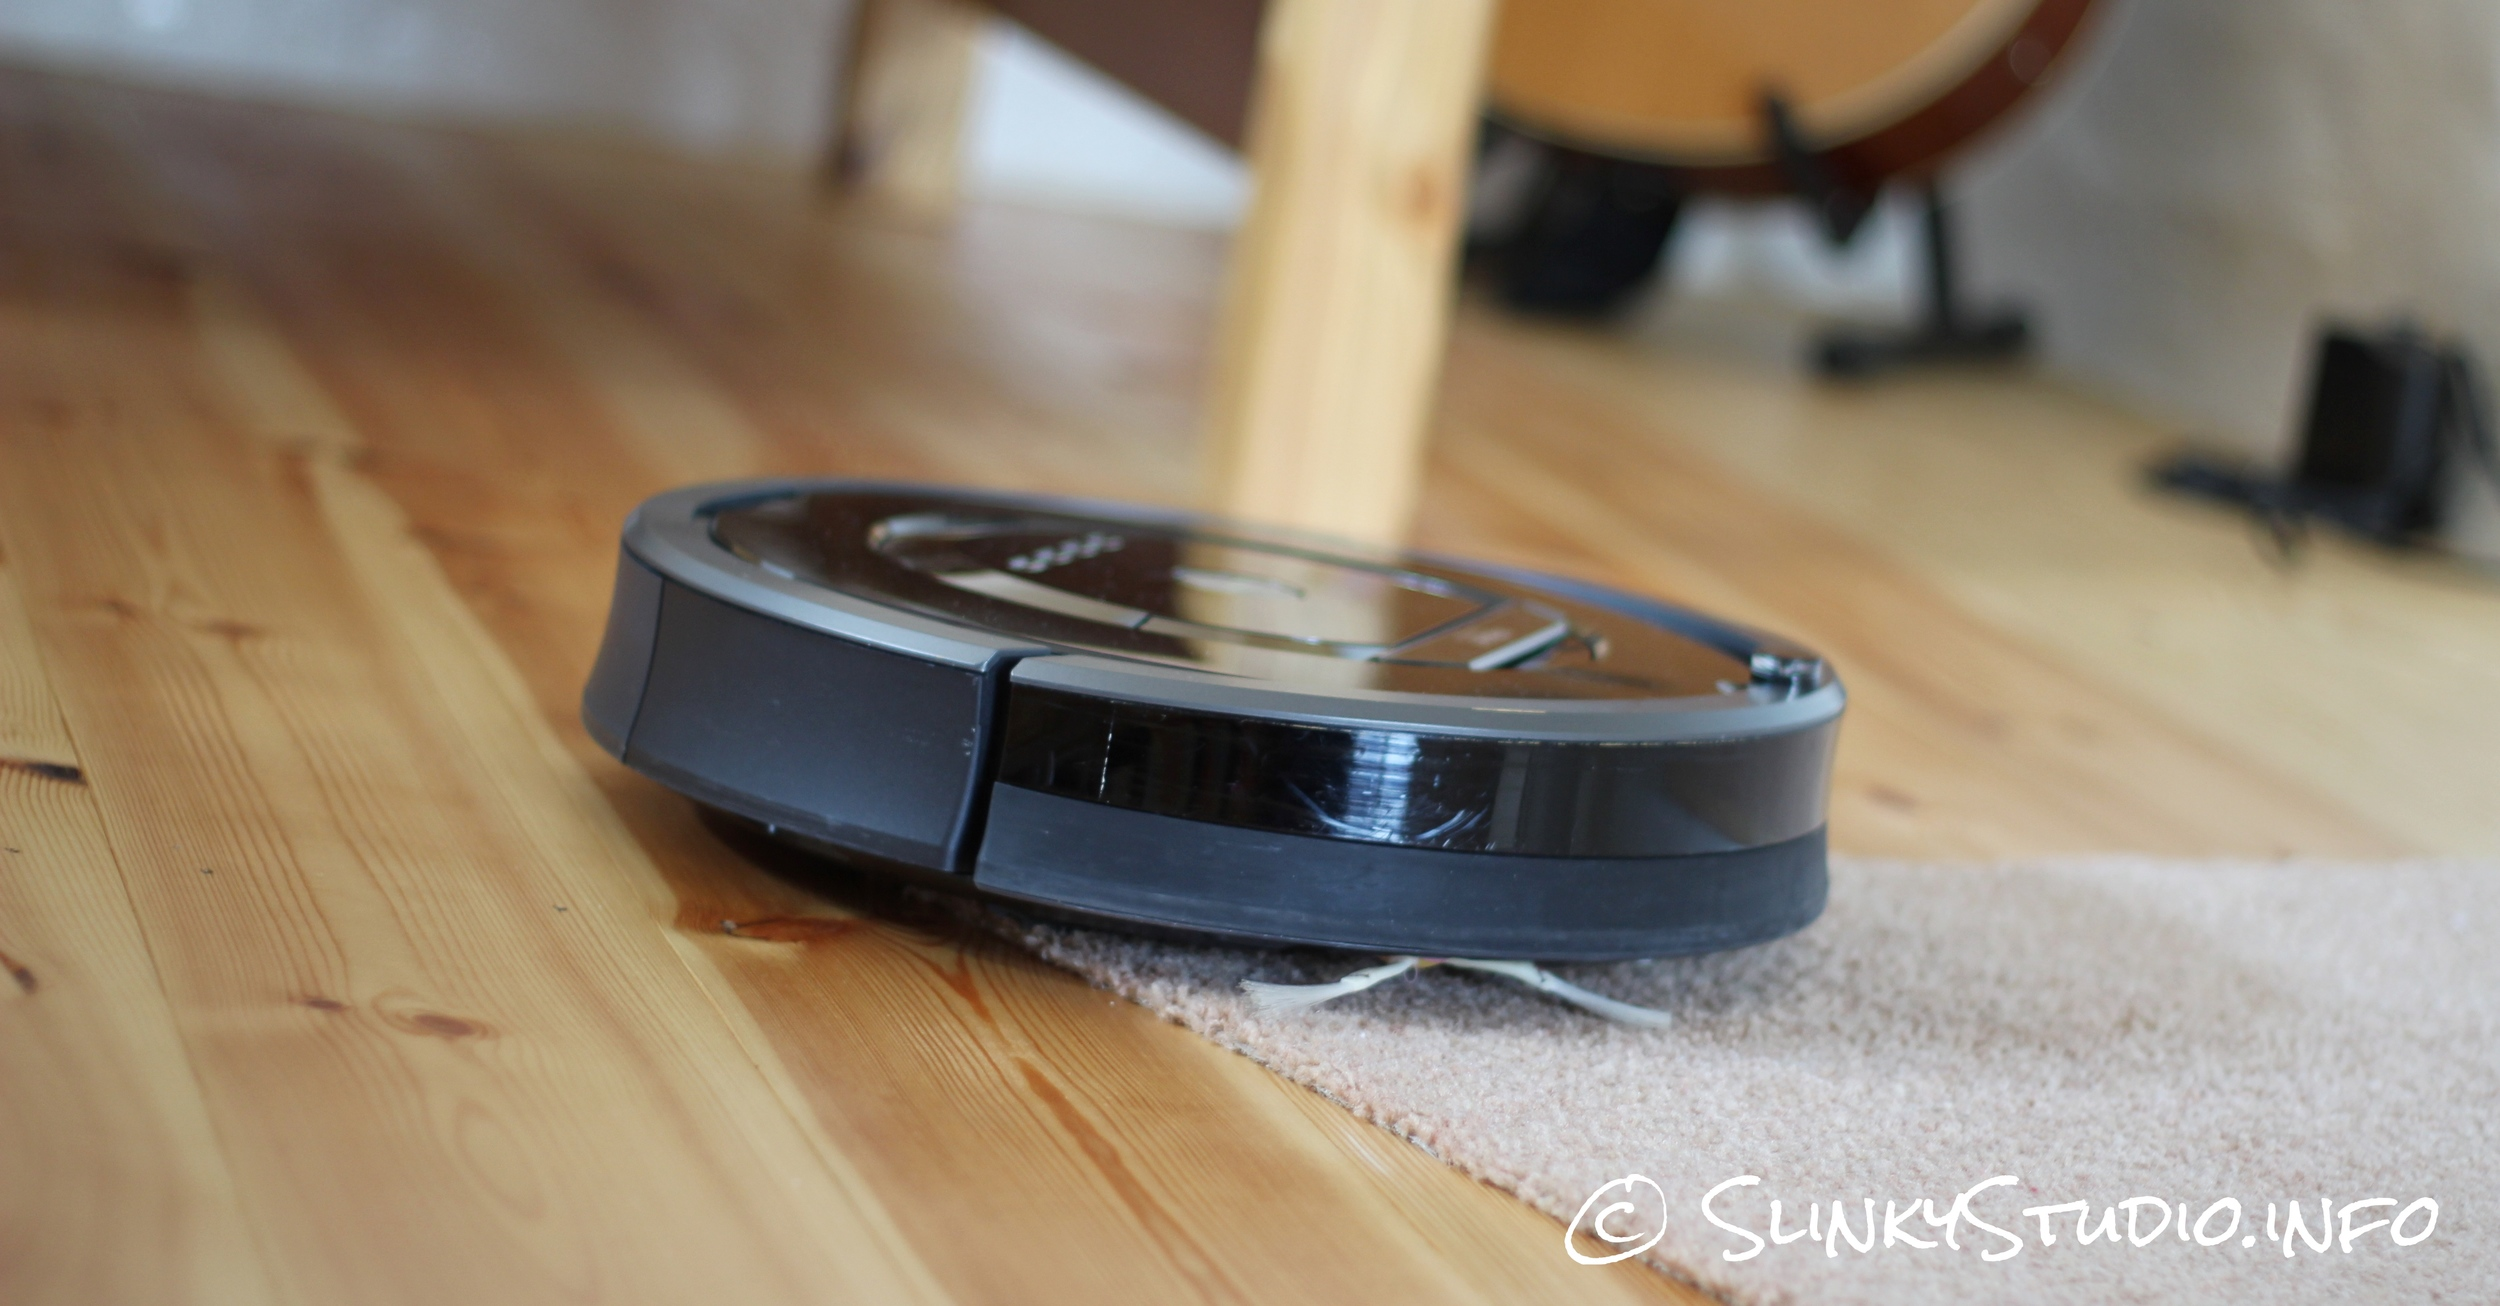 iRobot Roomba 880 Hard Wooden Floor to Rug